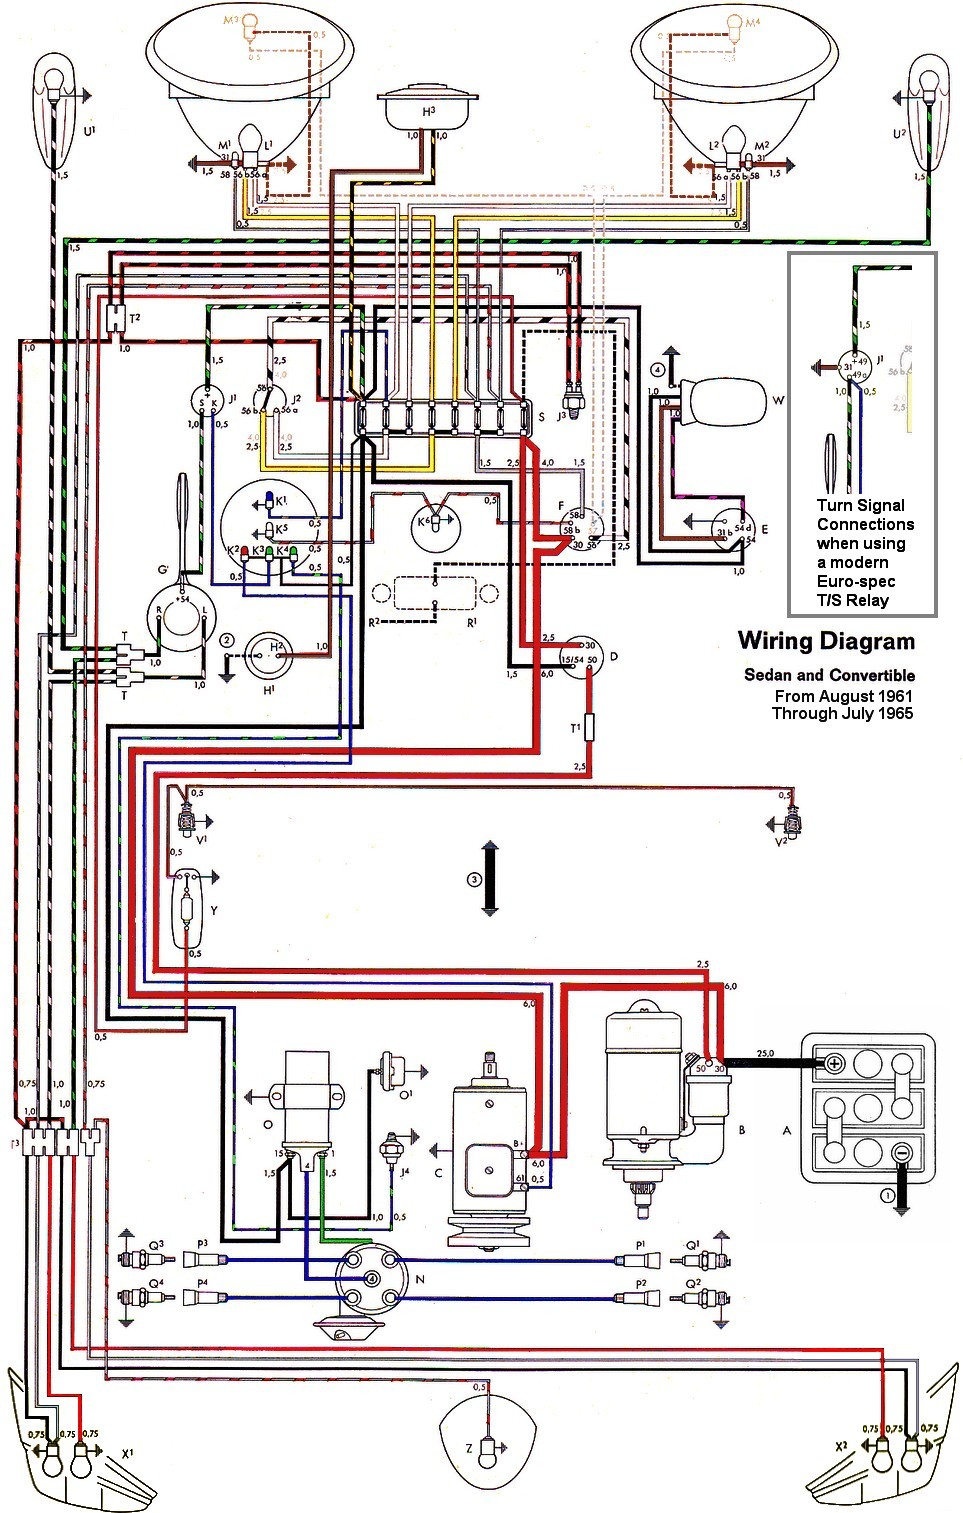 vw super beetle wiring diagram image 1972 vw beetle voltage regulator wiring diagram 1972 auto wiring on 1973 vw super beetle wiring